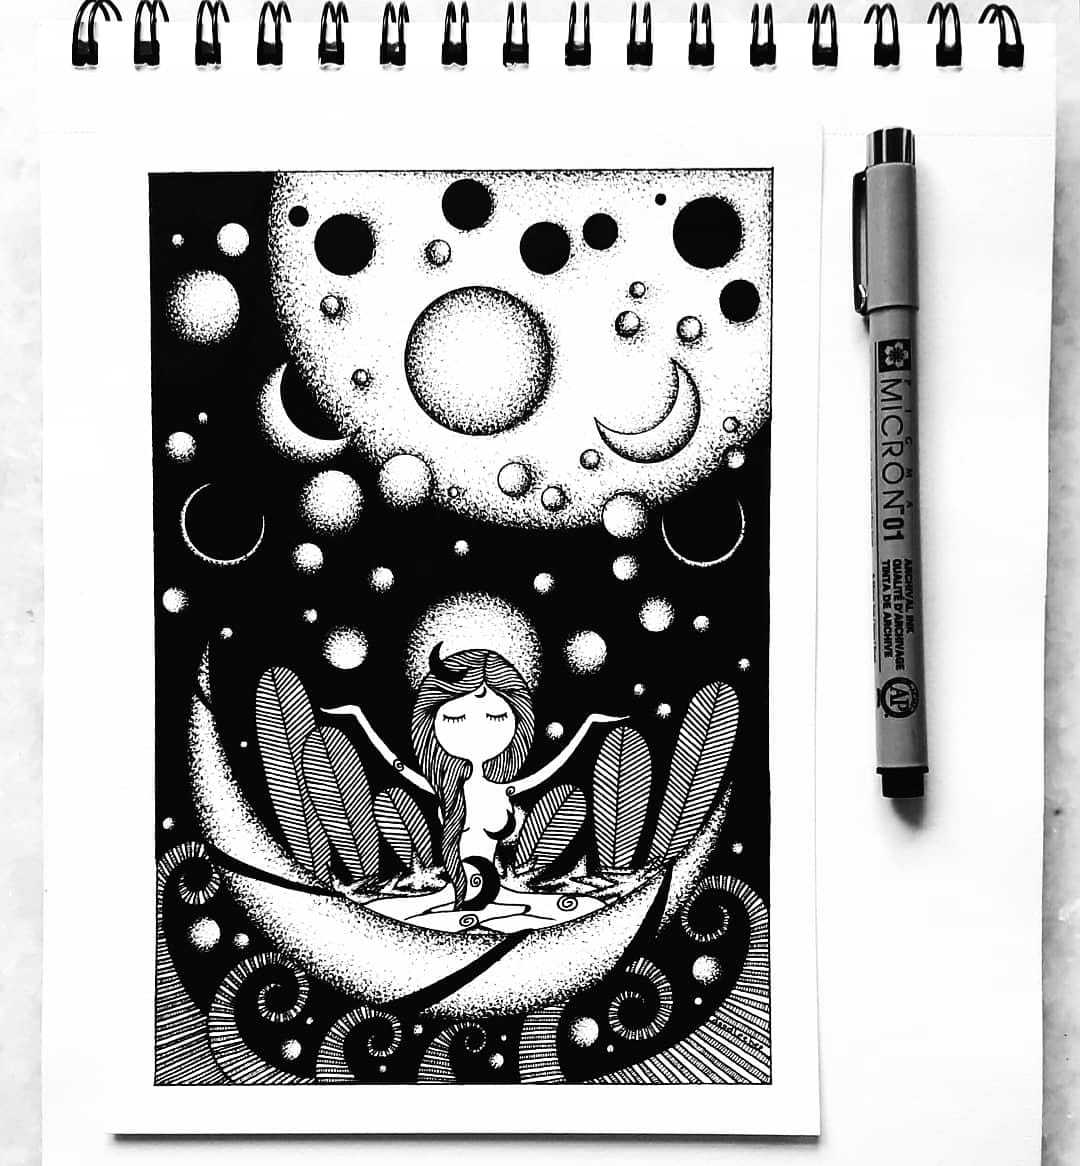 Inktober Prompt 25 - #Lunar Oh, when I saw her shining in the darkest night sky.. With an aura that lit up my entire Universe.. I finally knew I belonged. #Doodleebee #inktober2020 #inktober52 #inktober #moon #artwork #doodle #artpic.twitter.com/MBI7MA9pvl